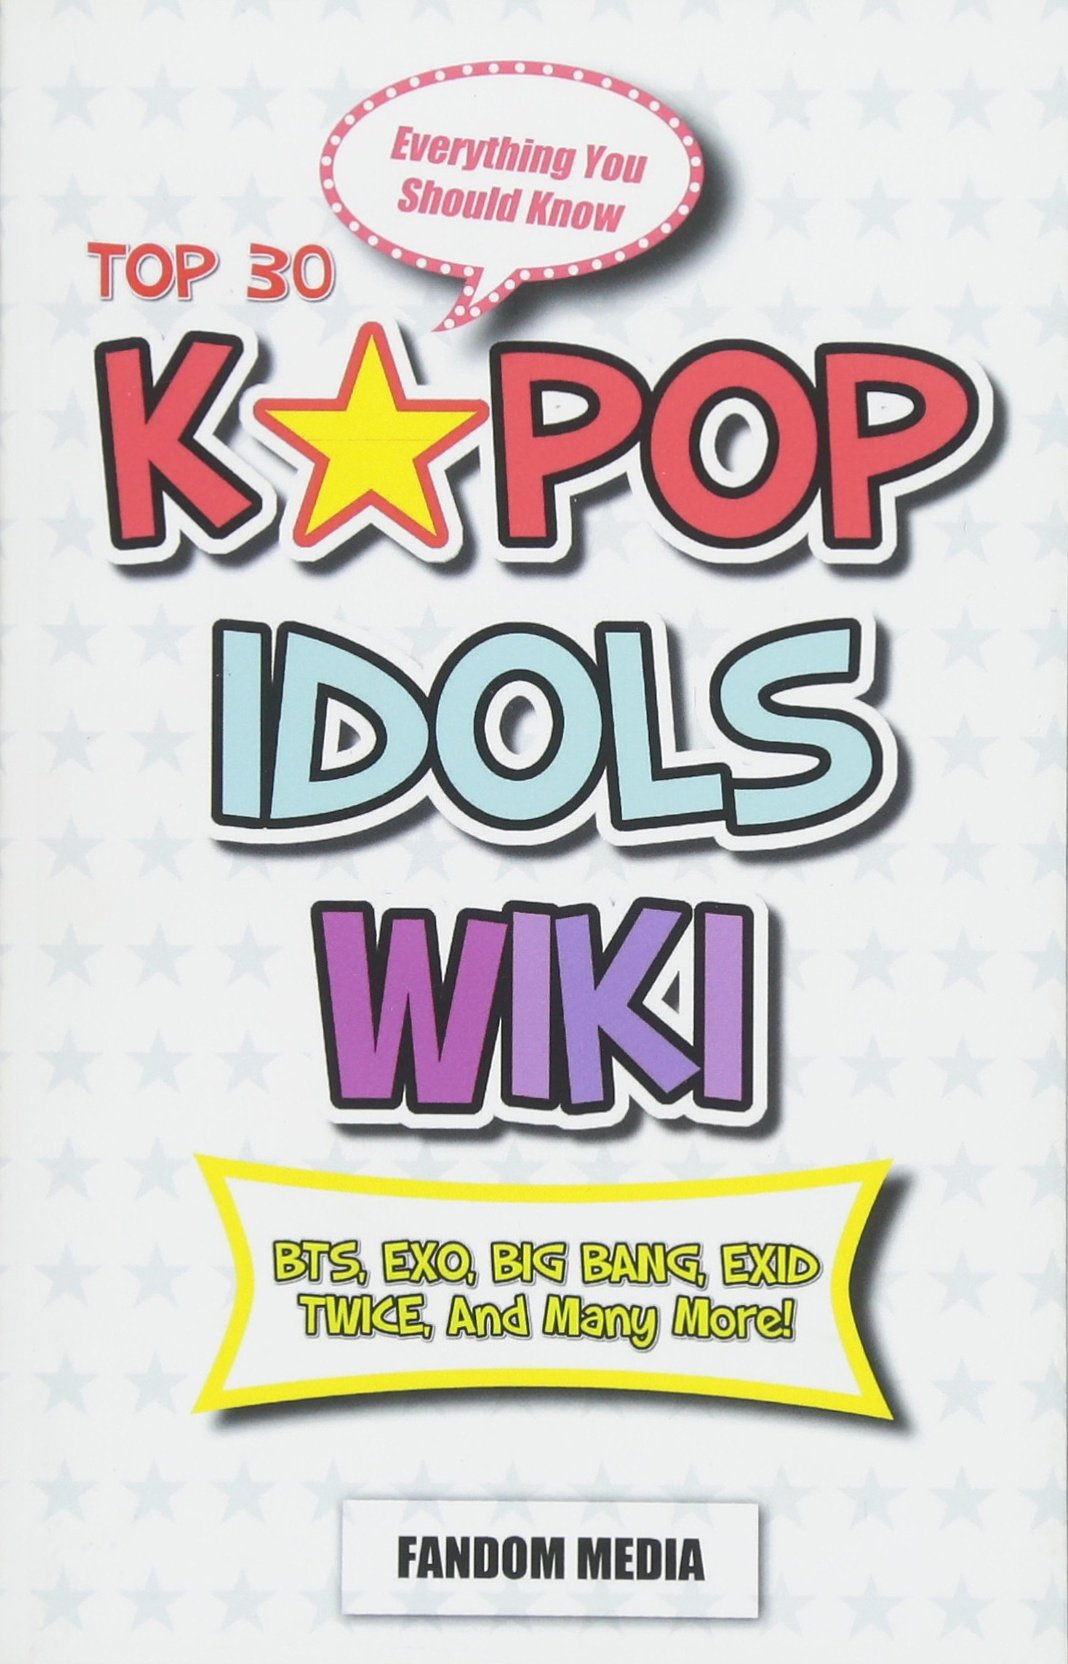 KPOP Idols Wiki: Everything You Should Know About Top 30